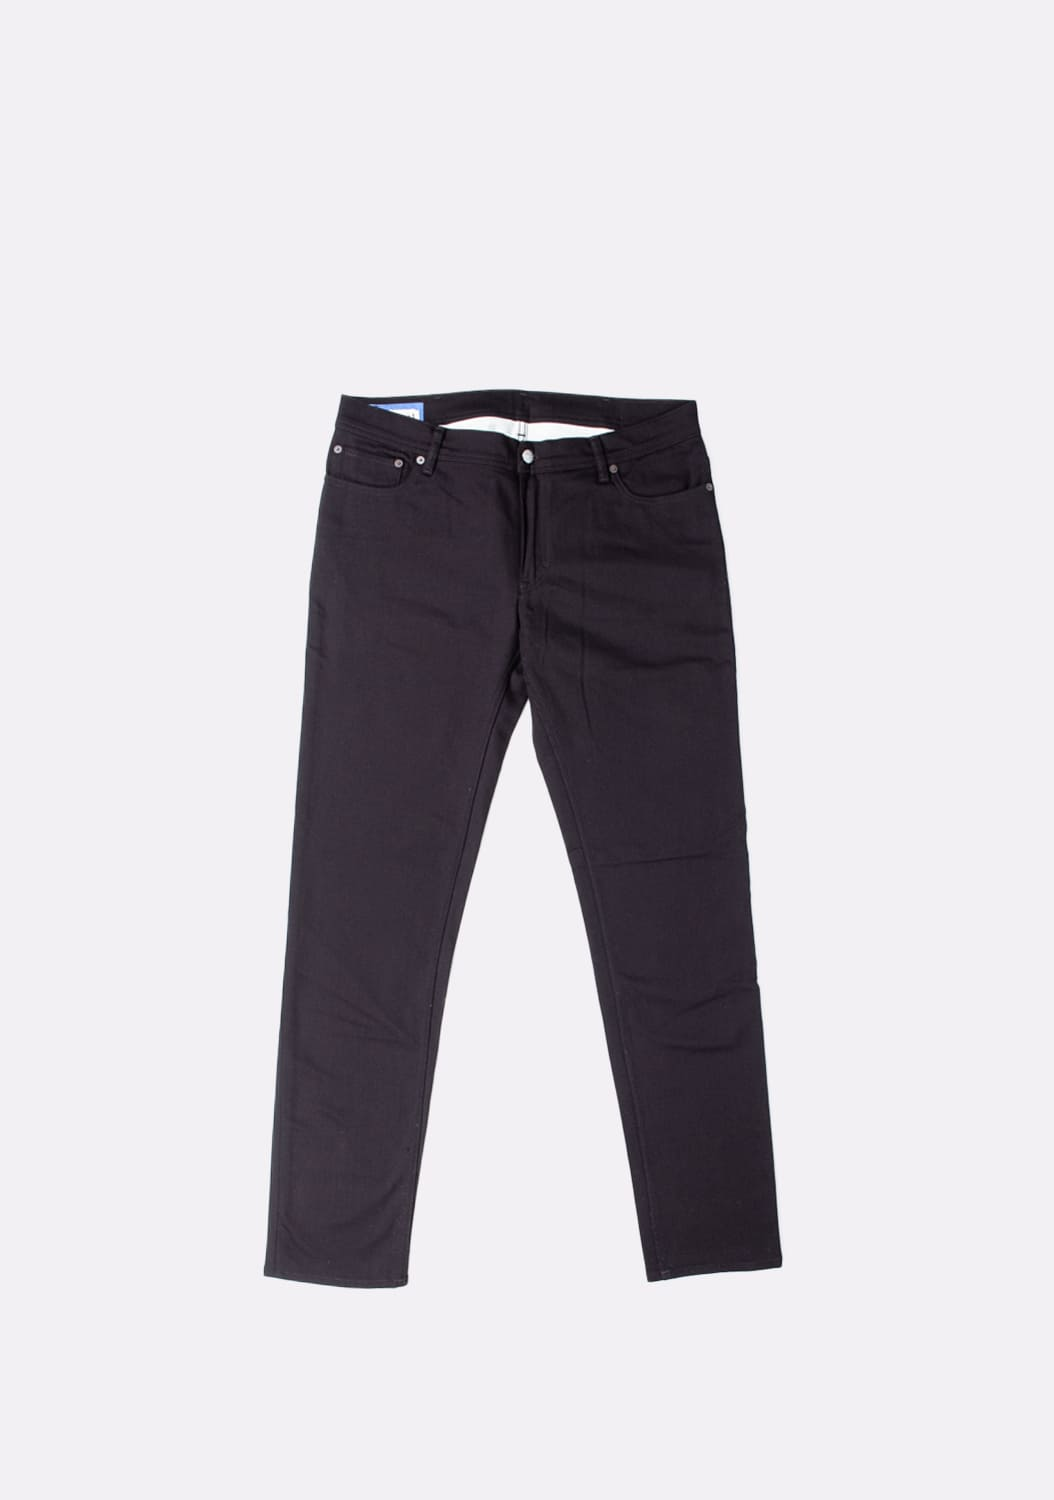 Acne-Studios-Blå-Konst-North-Stay-Black-dzinsai-dydis-34-32 (5)